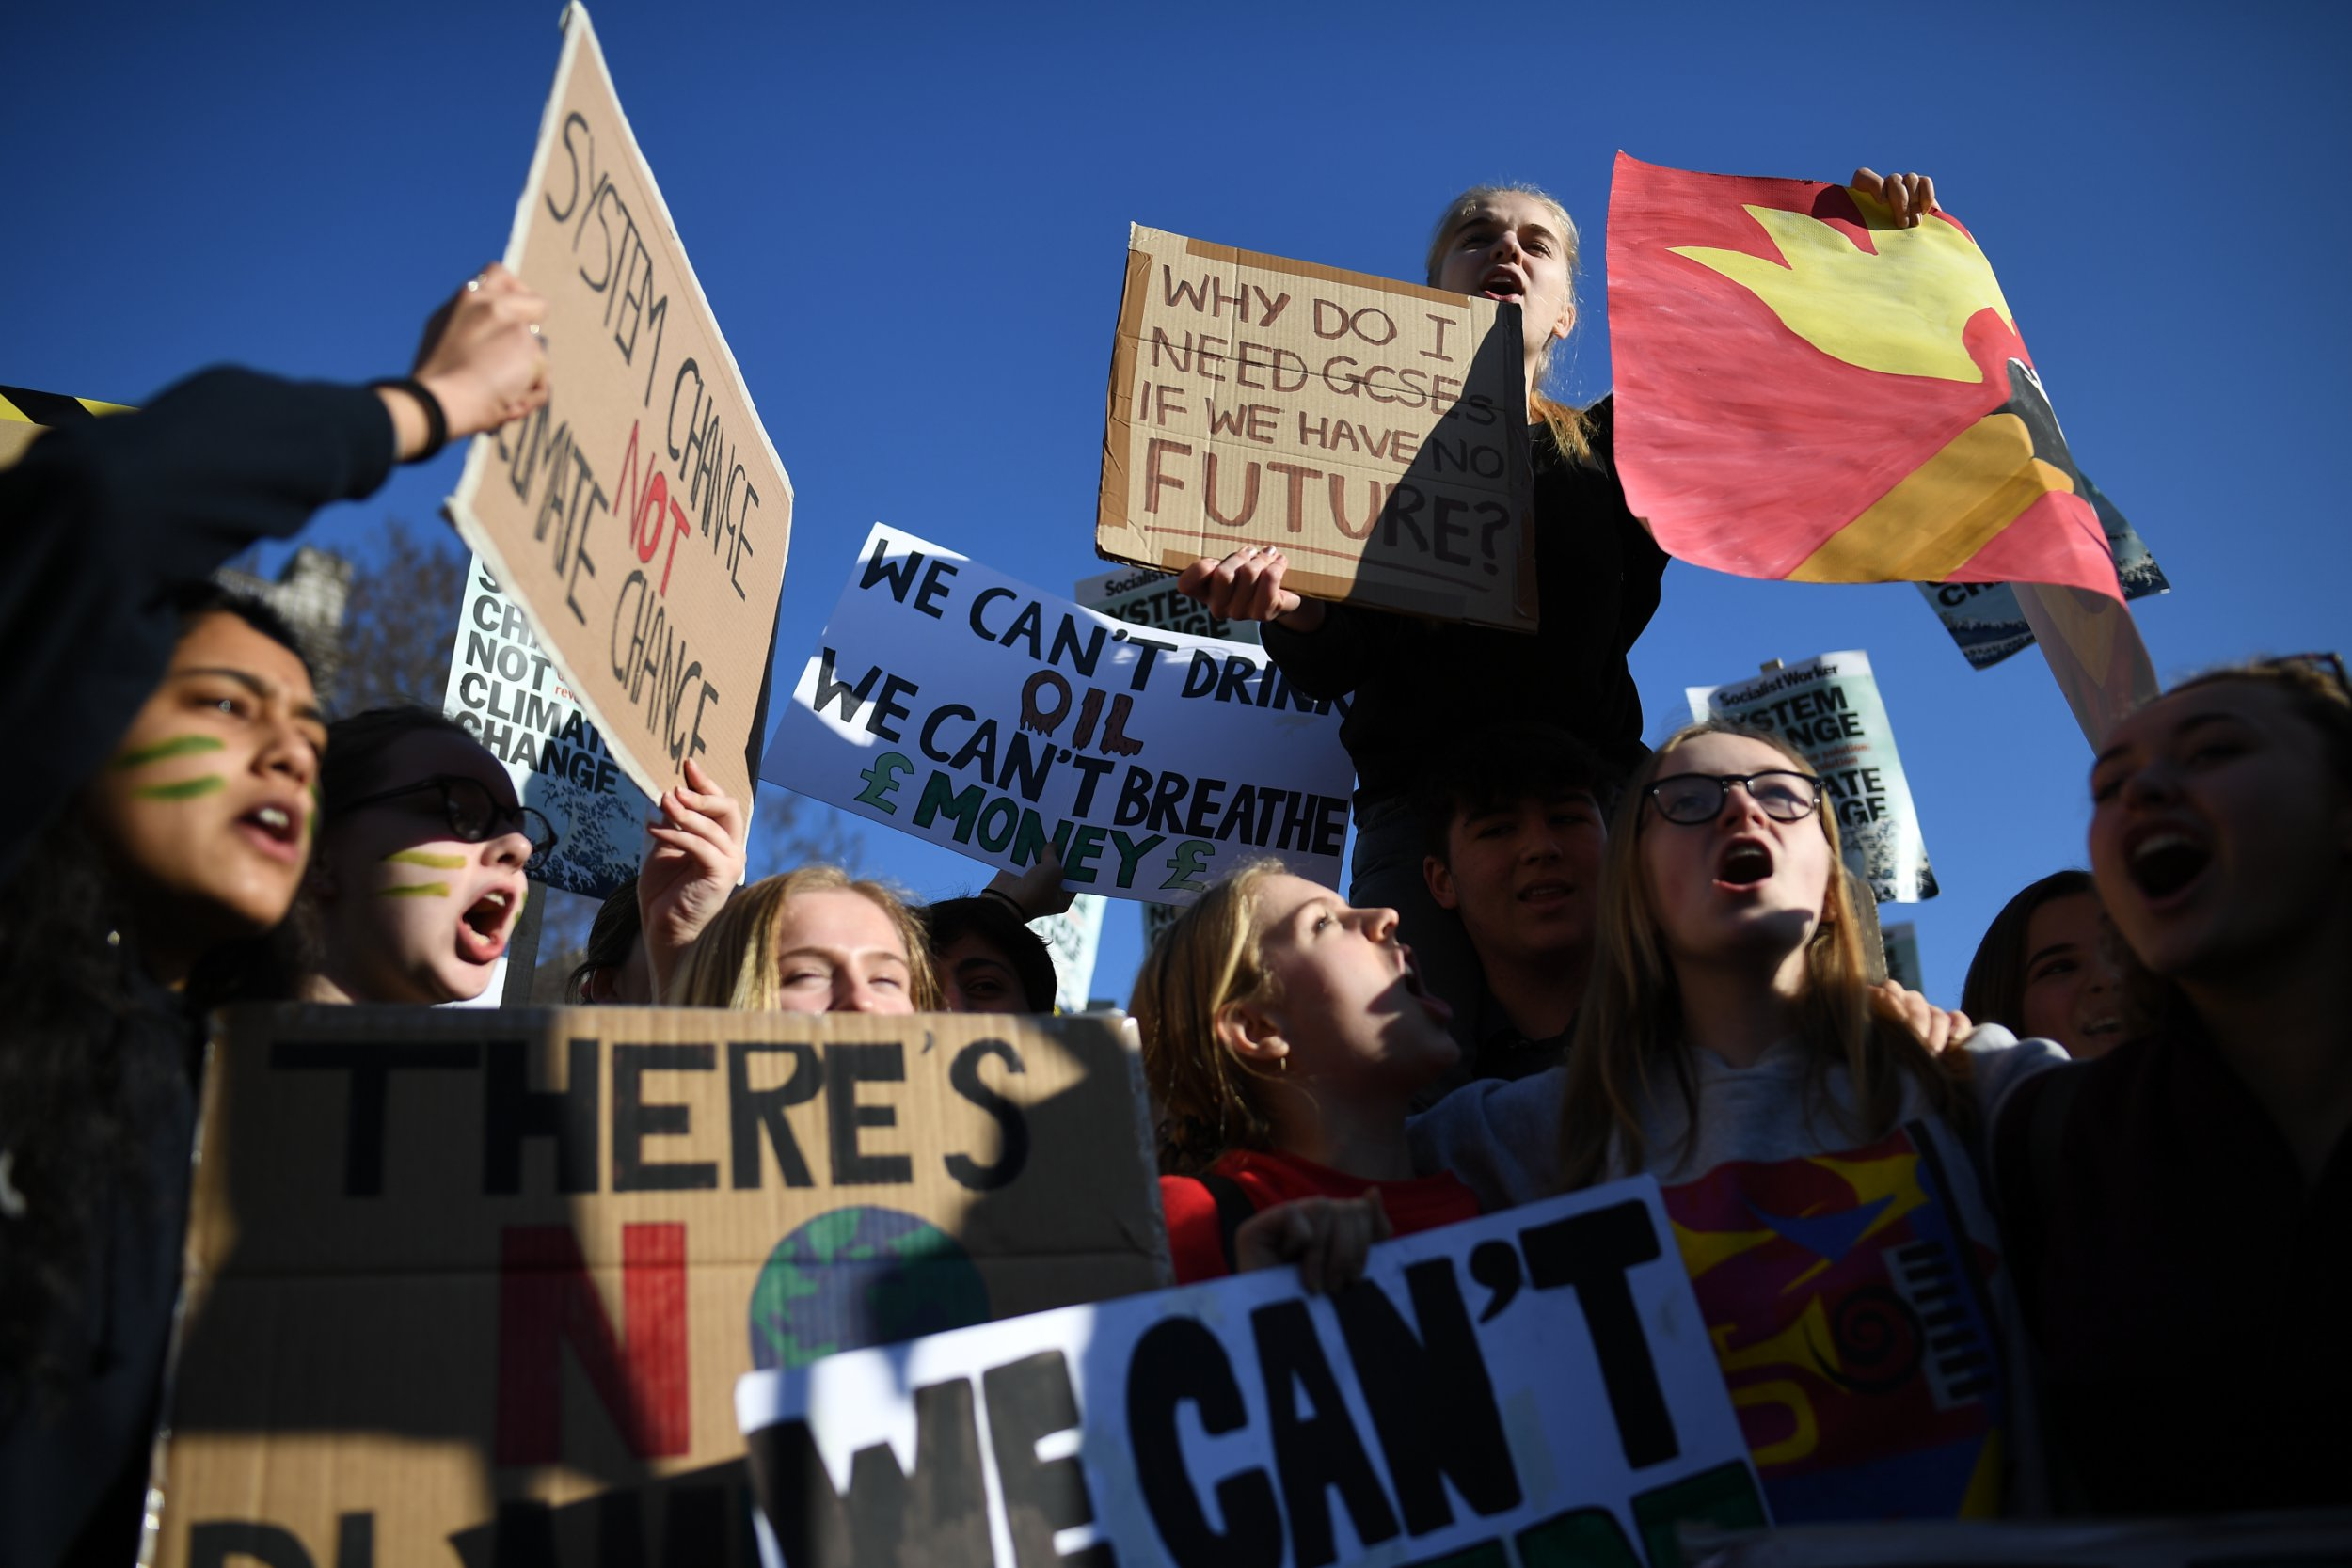 Schoolchildren take part in a student climate march in Parliament Square